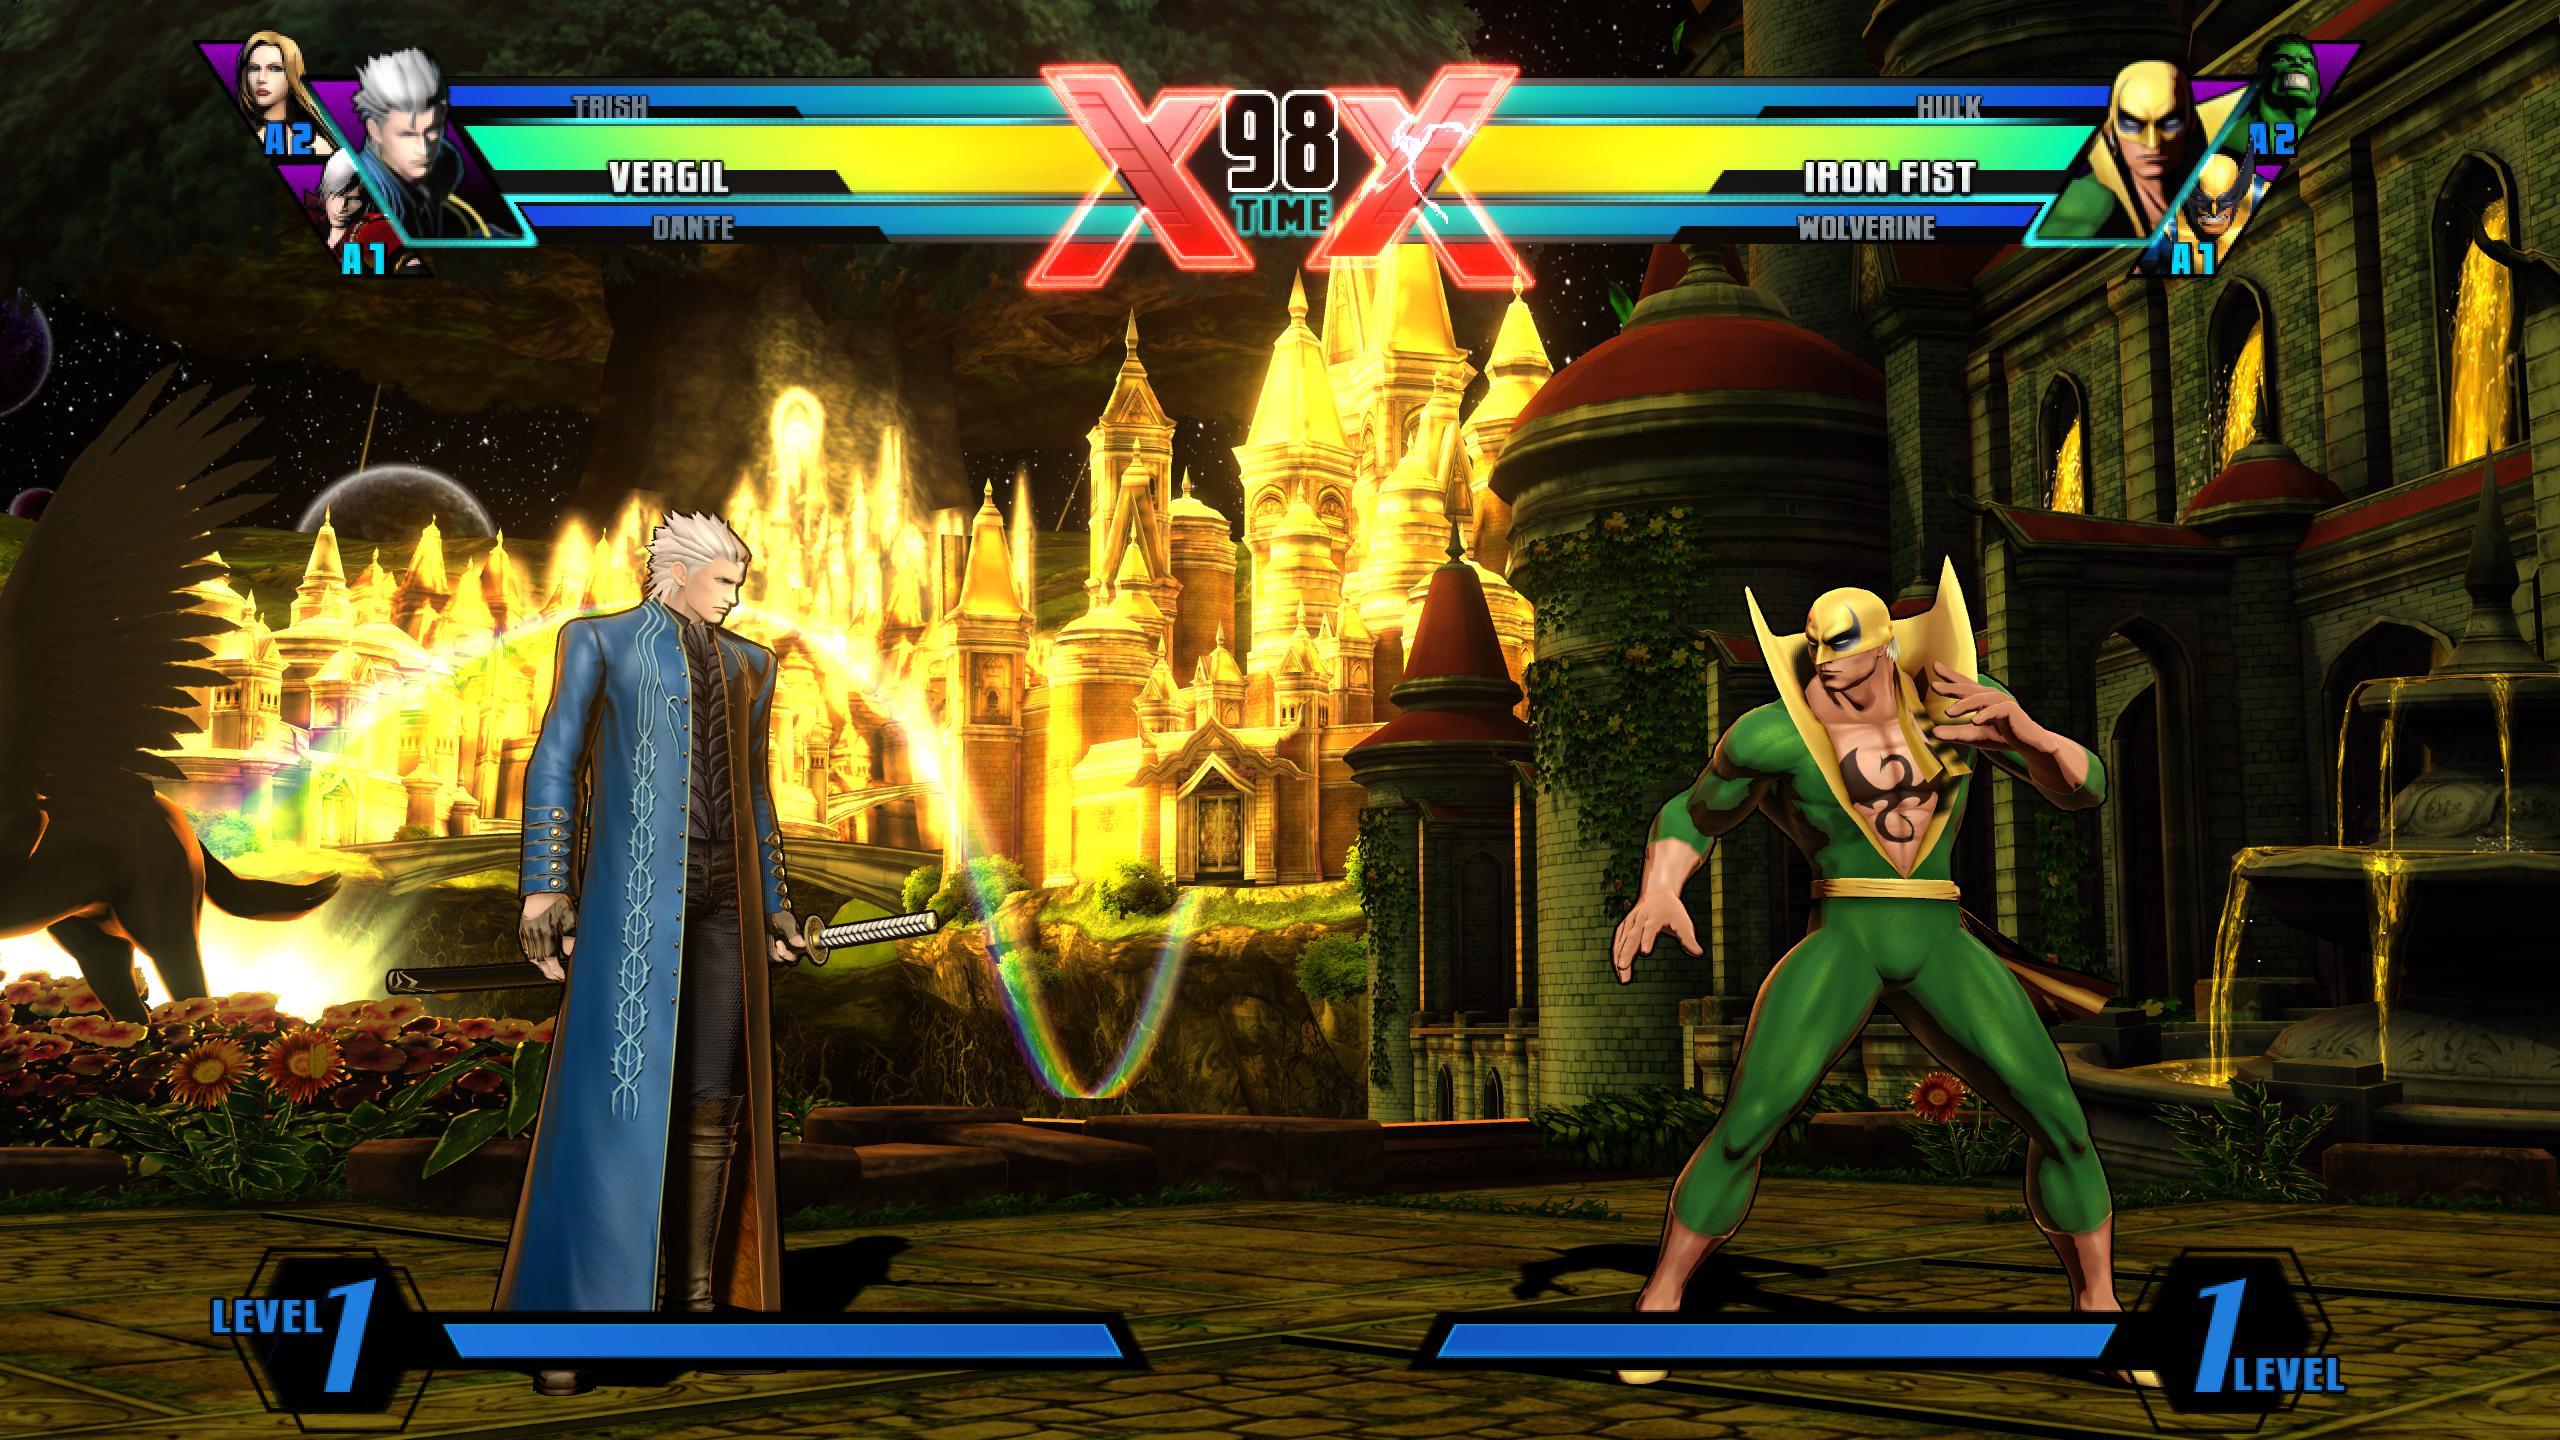 Vergil dans Ultimate Marvel vs. Capcom 3 6151128410_366a69923f_o